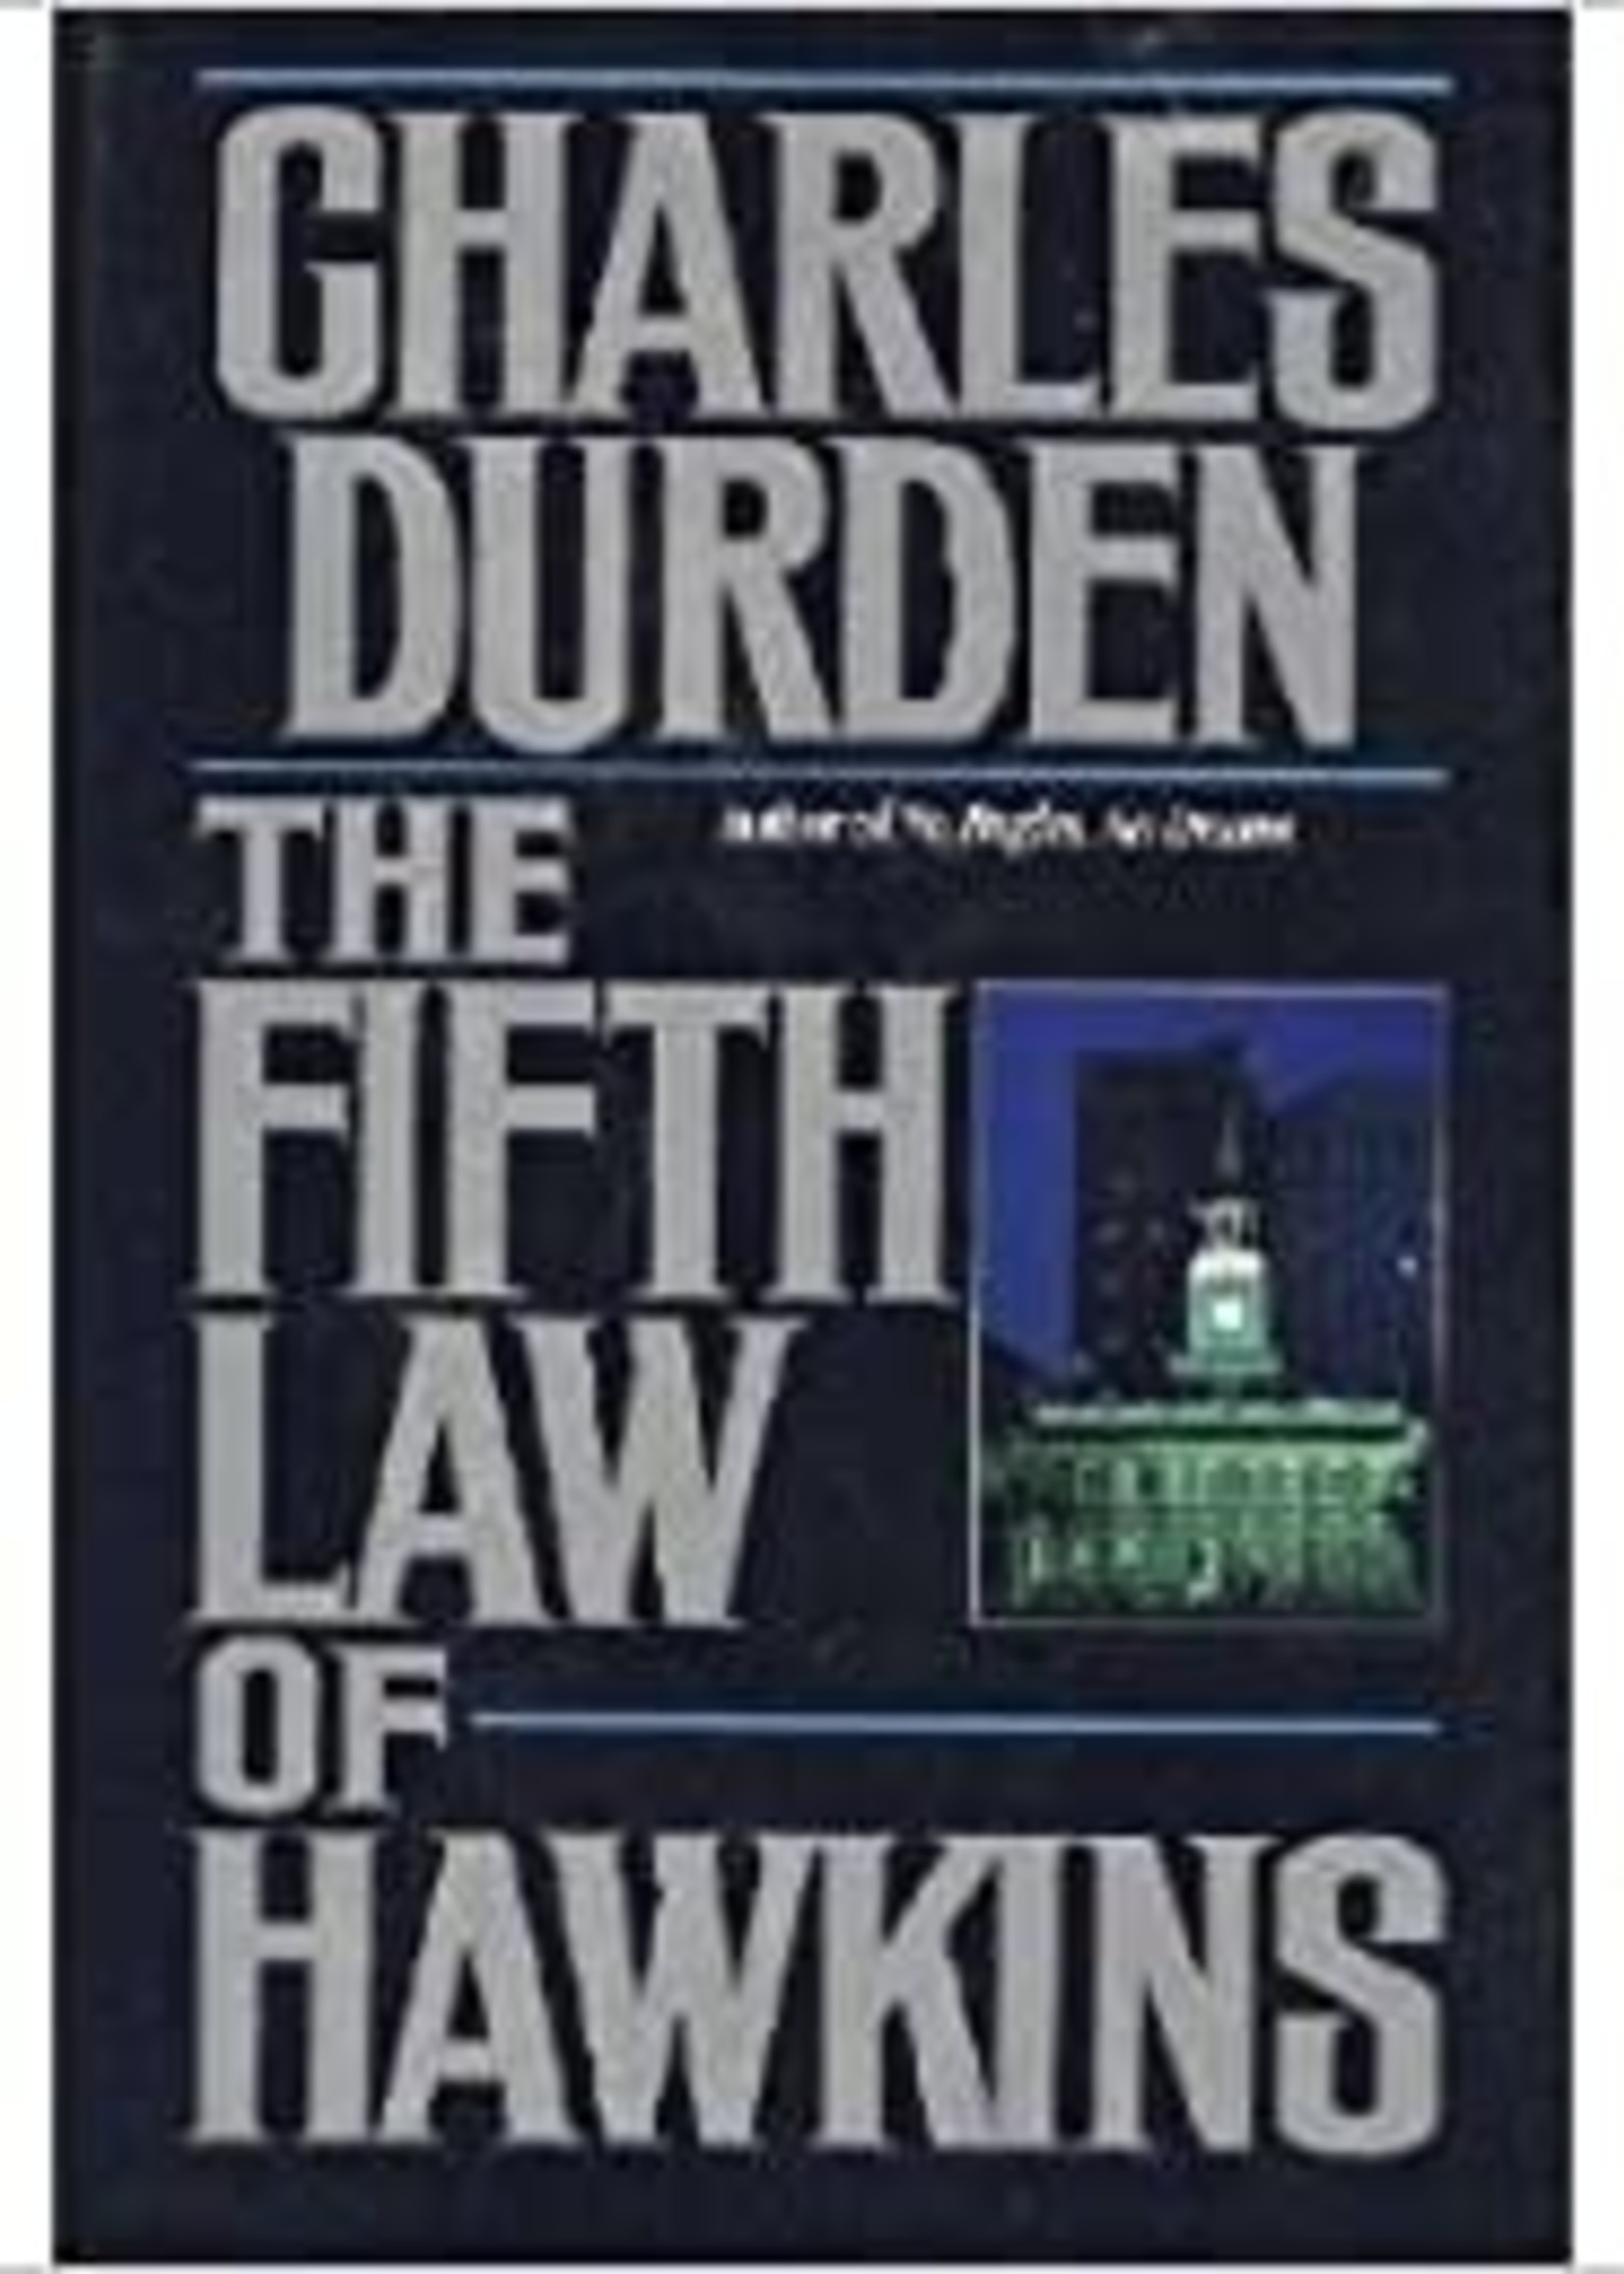 USED - The Fifth Law of Hawkins by Charles Durden